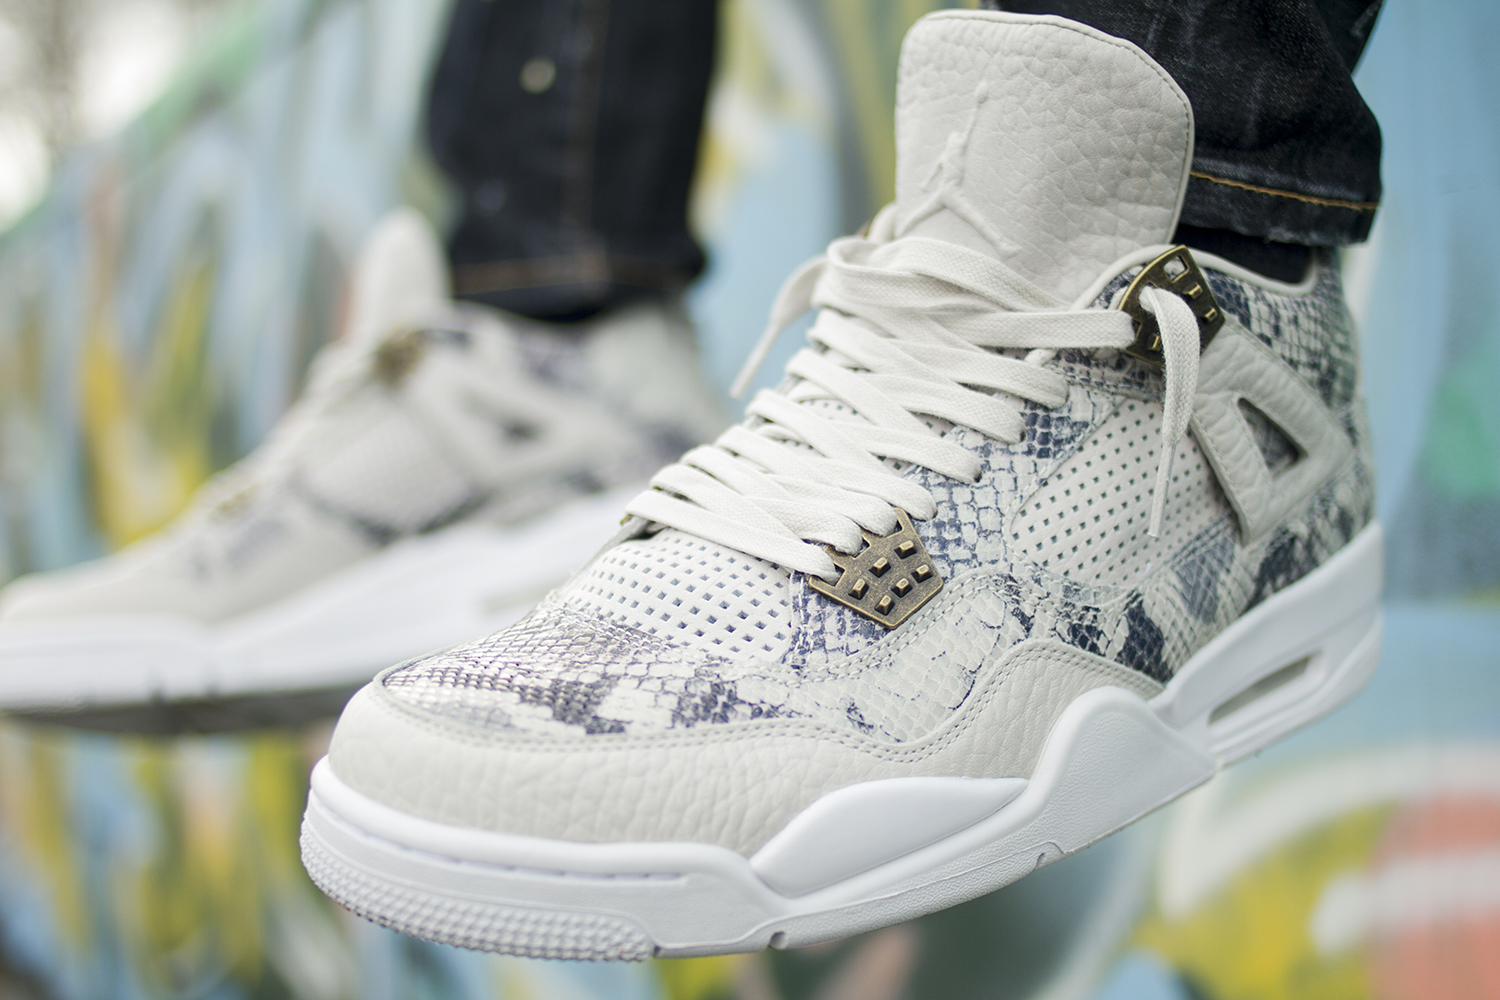 Fabian – Jordan 4 Pinnacle Snakeskin